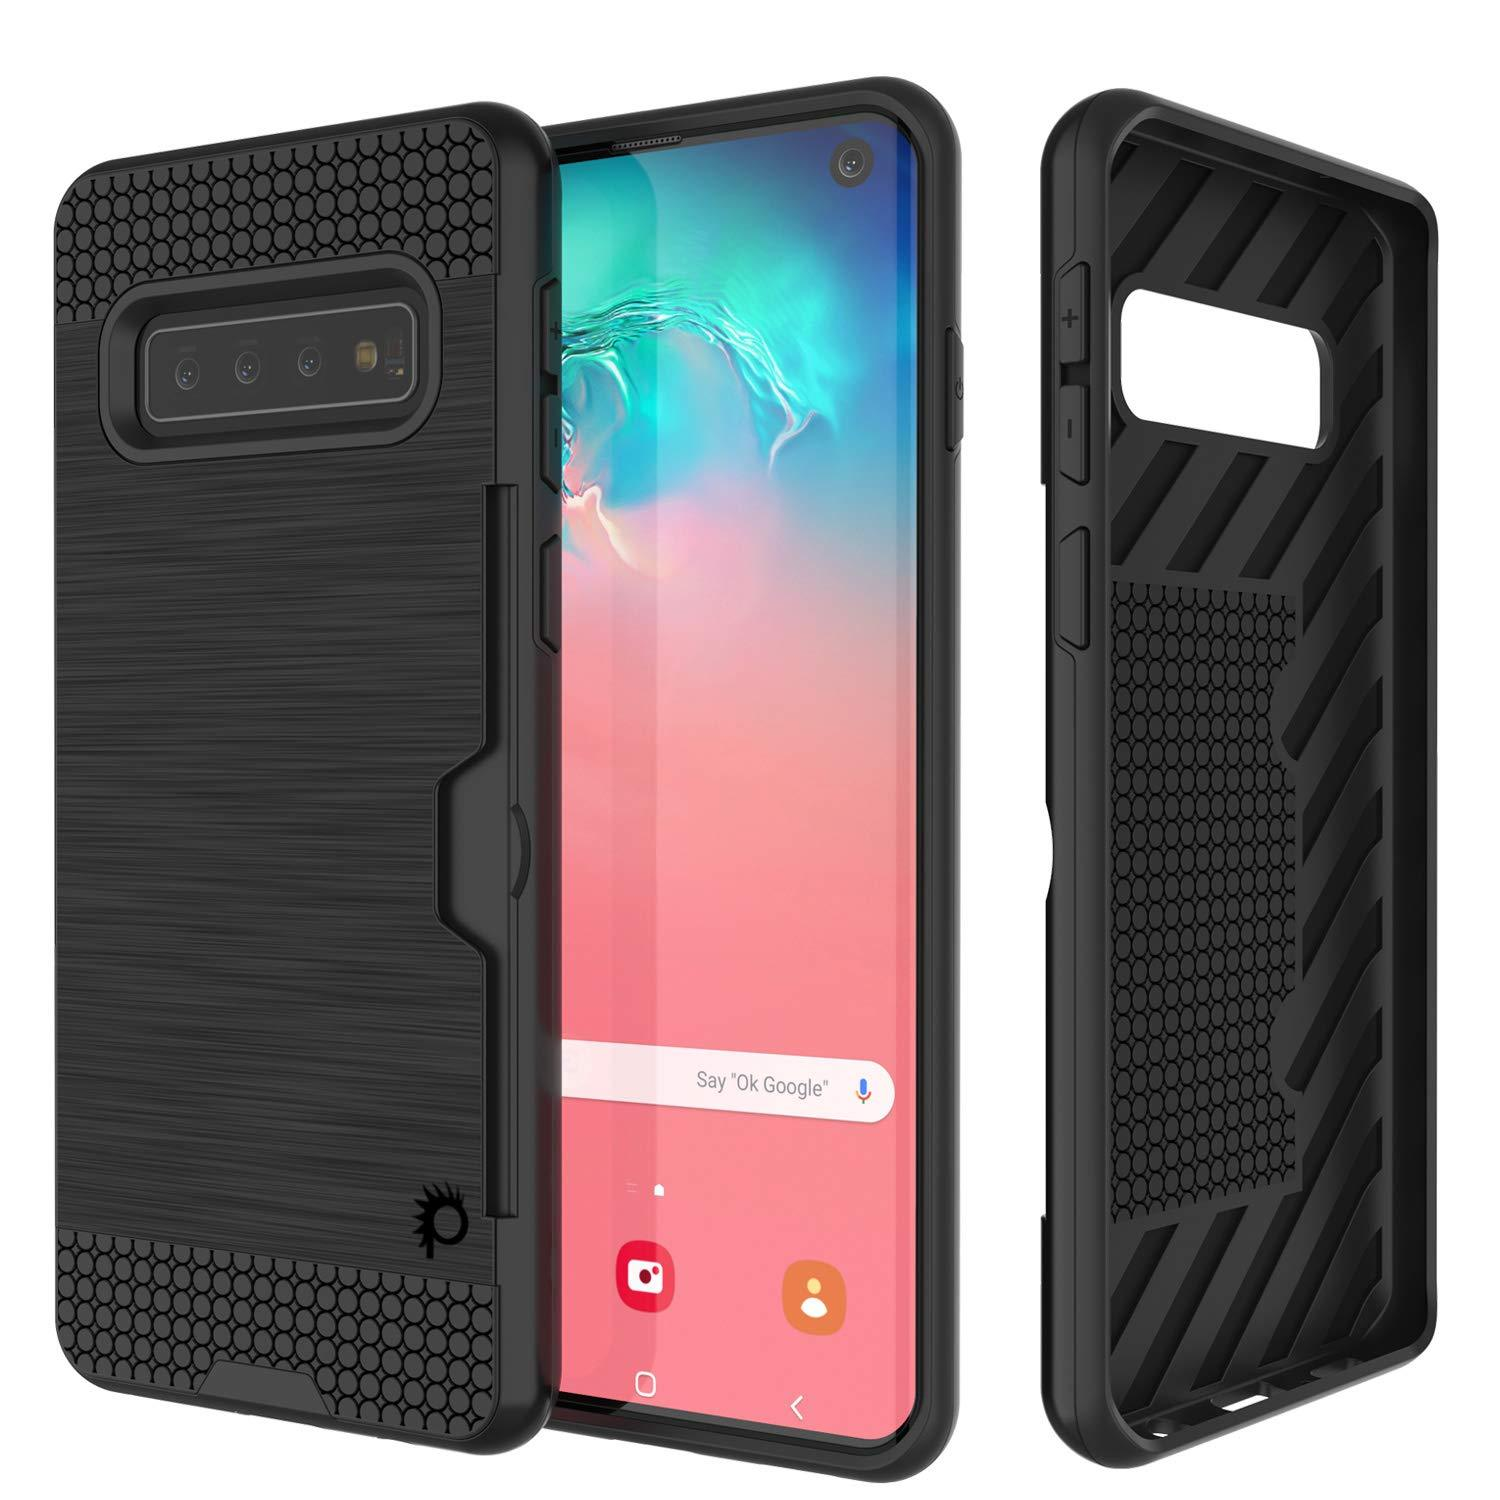 Galaxy S10e Case, PUNKcase [SLOT Series] [Slim Fit] Dual-Layer Armor Cover w/Integrated Anti-Shock System, Credit Card Slot [Black]